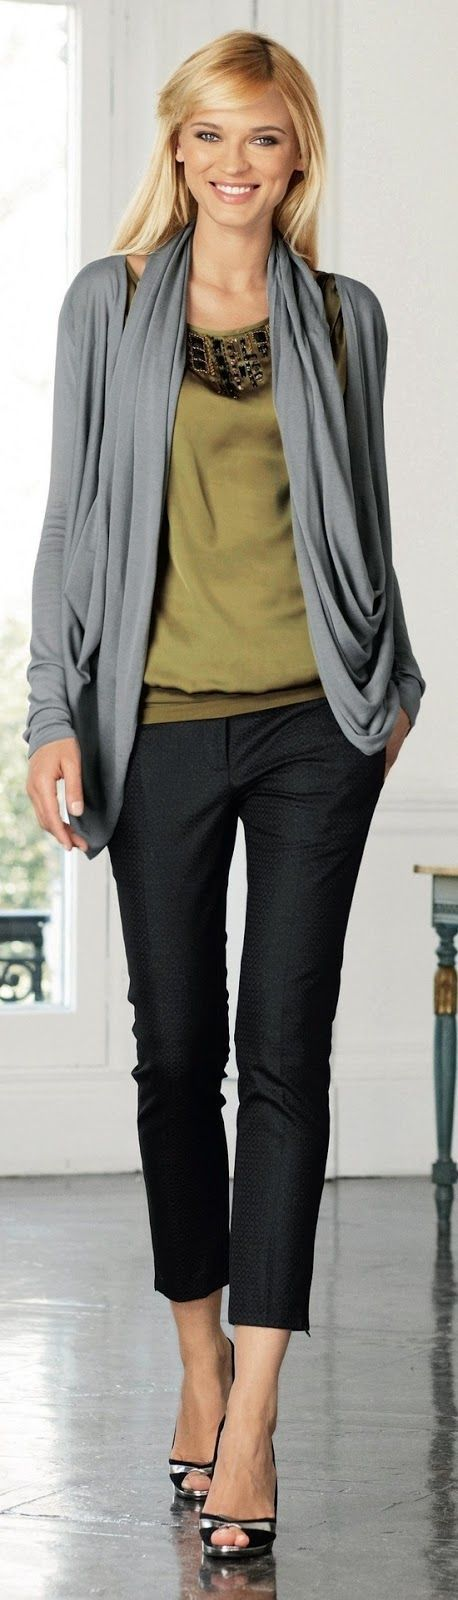 New Fashion Trends: Pants trends 2013 – #fashion #pants #trends